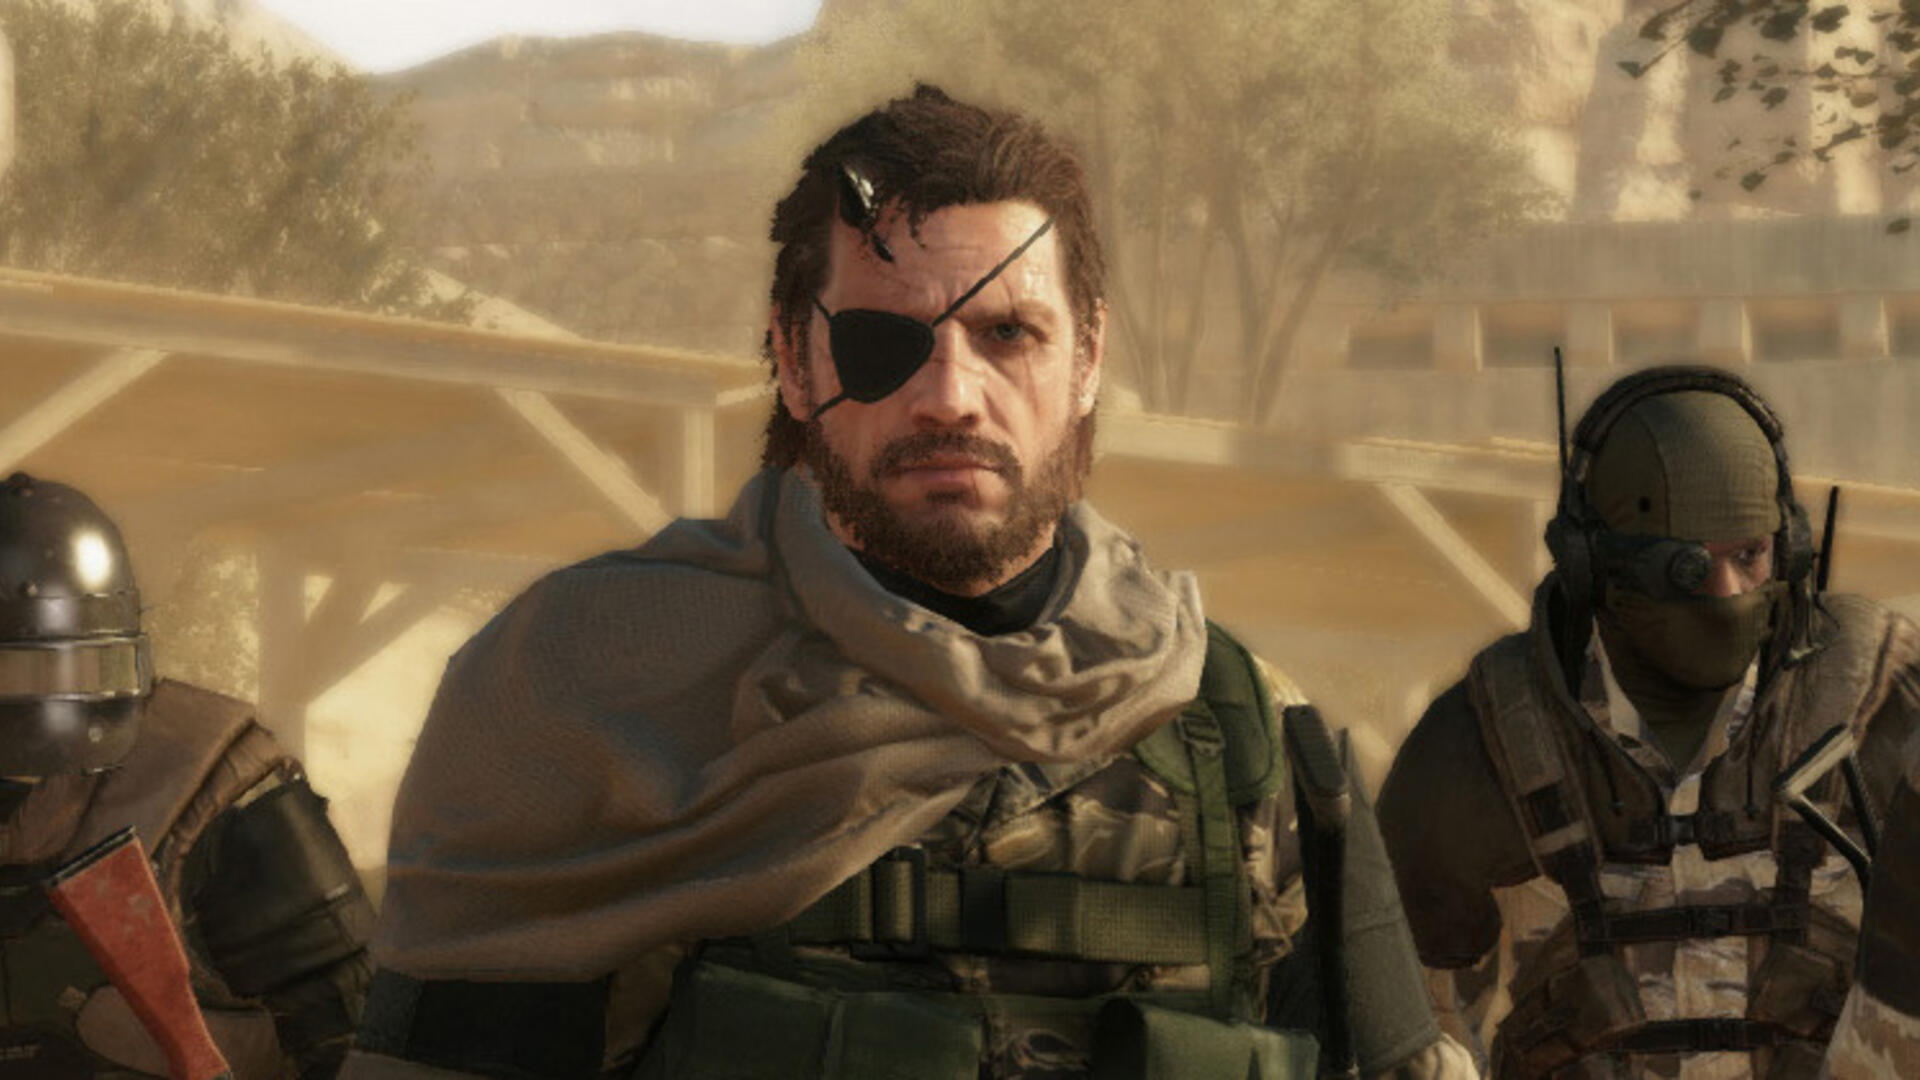 Metal Gear Solid 5 - Hellbound Mission Guide - Mission 12 Walkthrough - How to get an S Rank